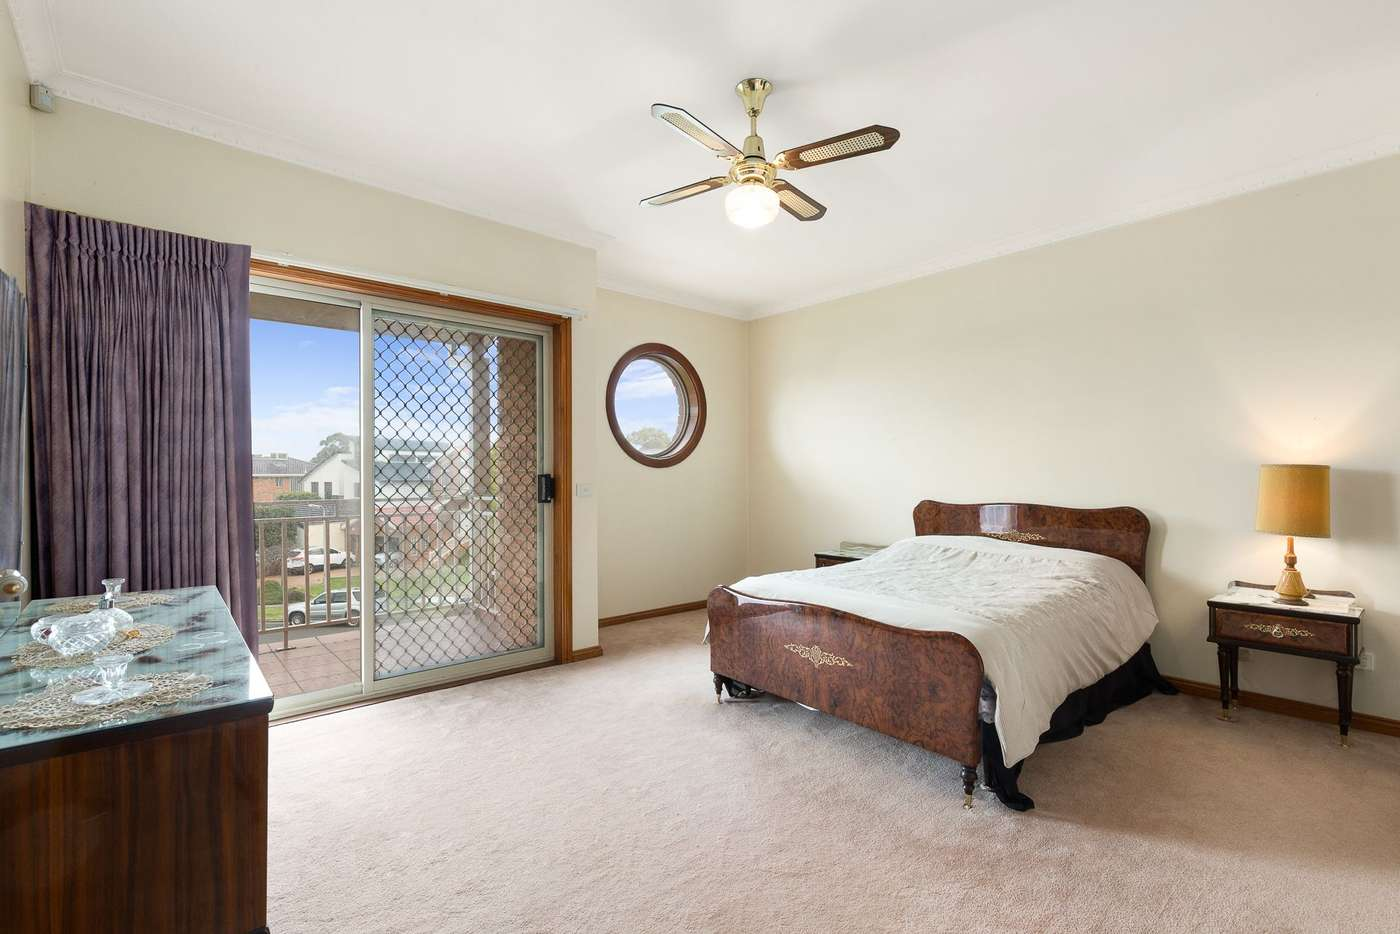 Sixth view of Homely house listing, 13 Cortina Place, Avondale Heights VIC 3034